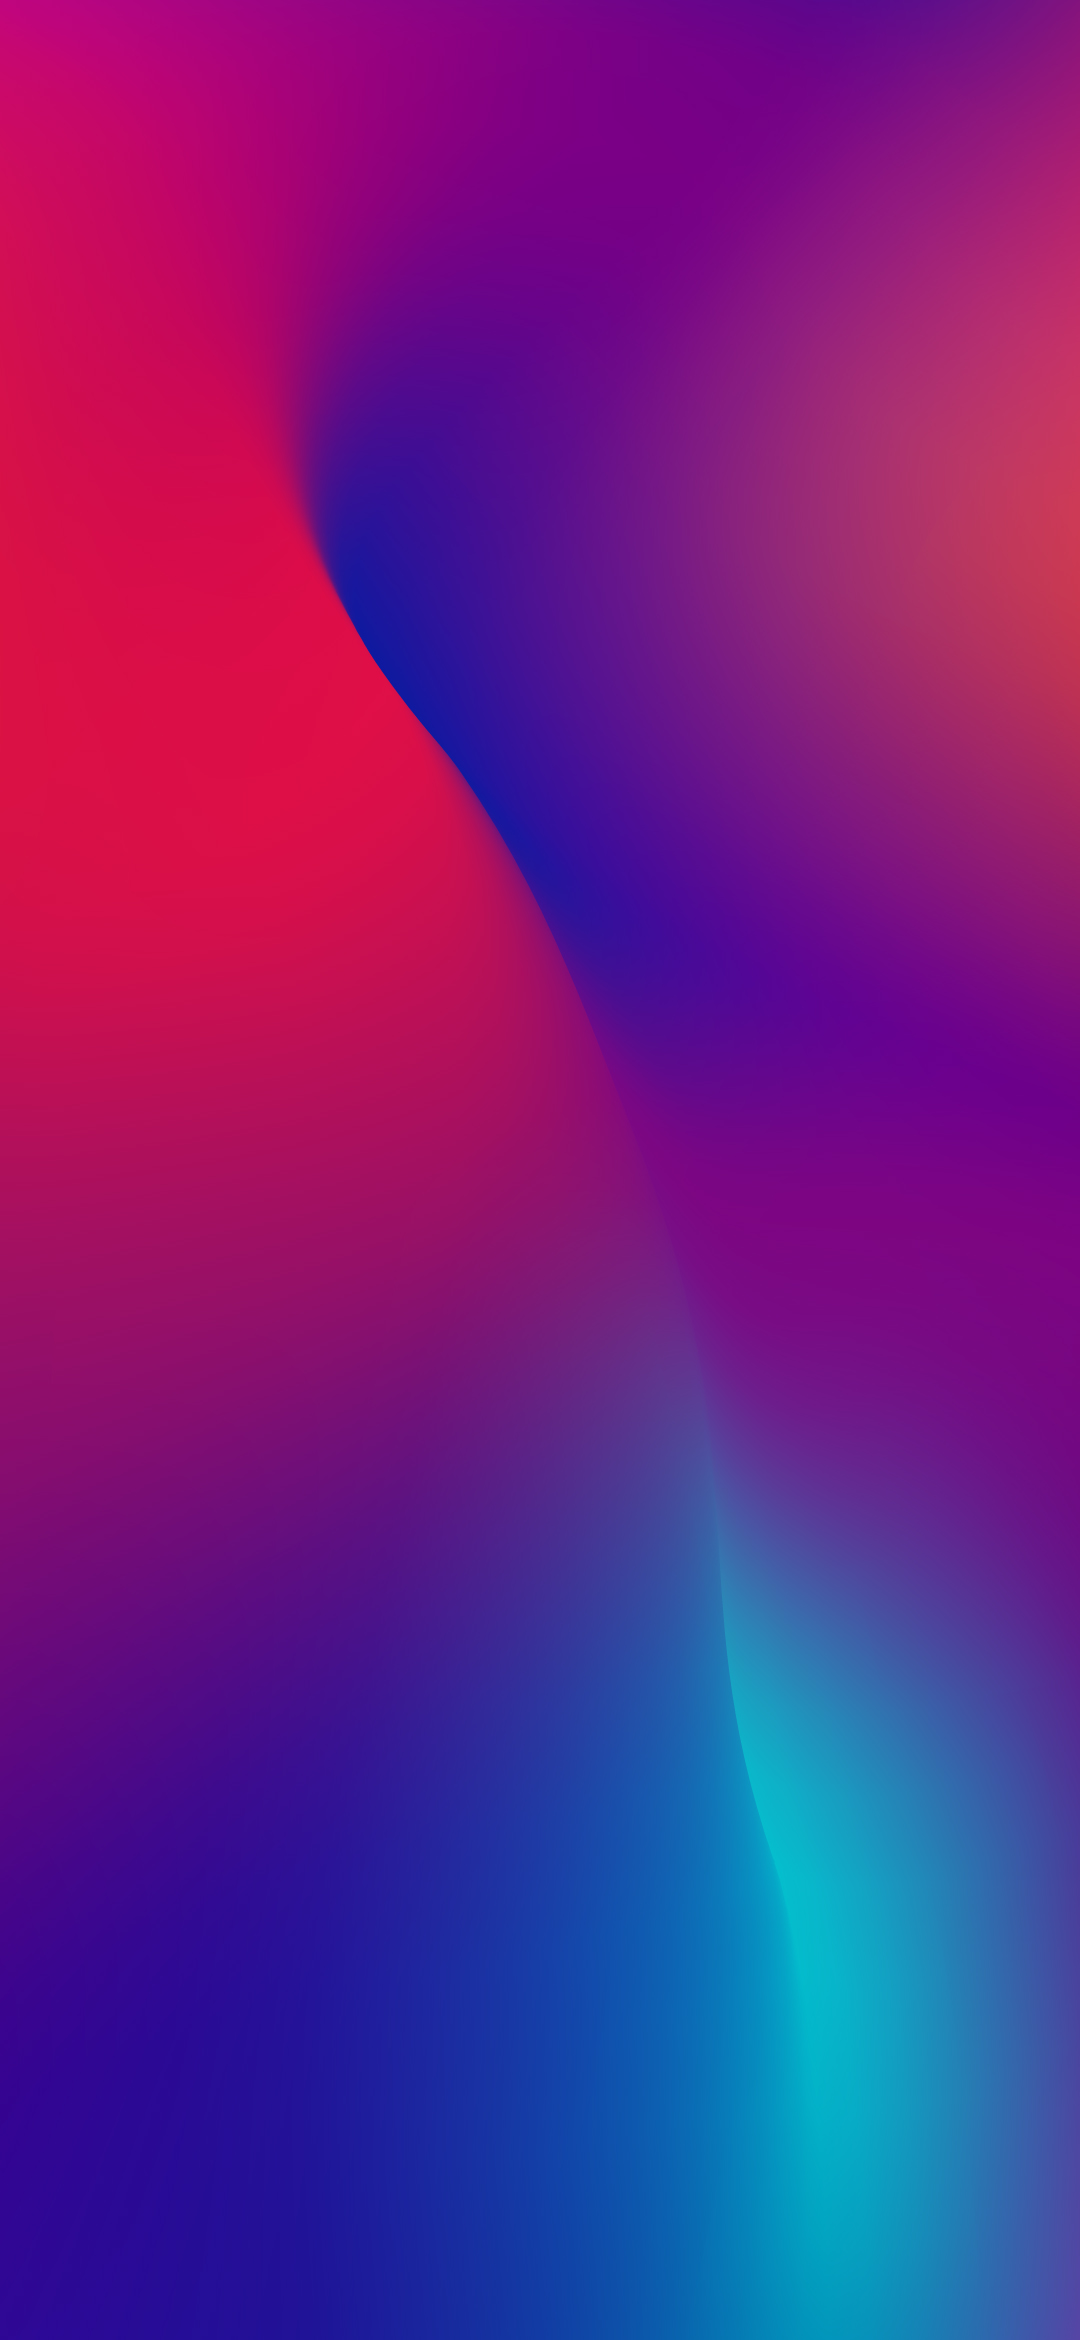 Free Download Download Oppo R17 Pro Wallpapers 11 Fhd Walls